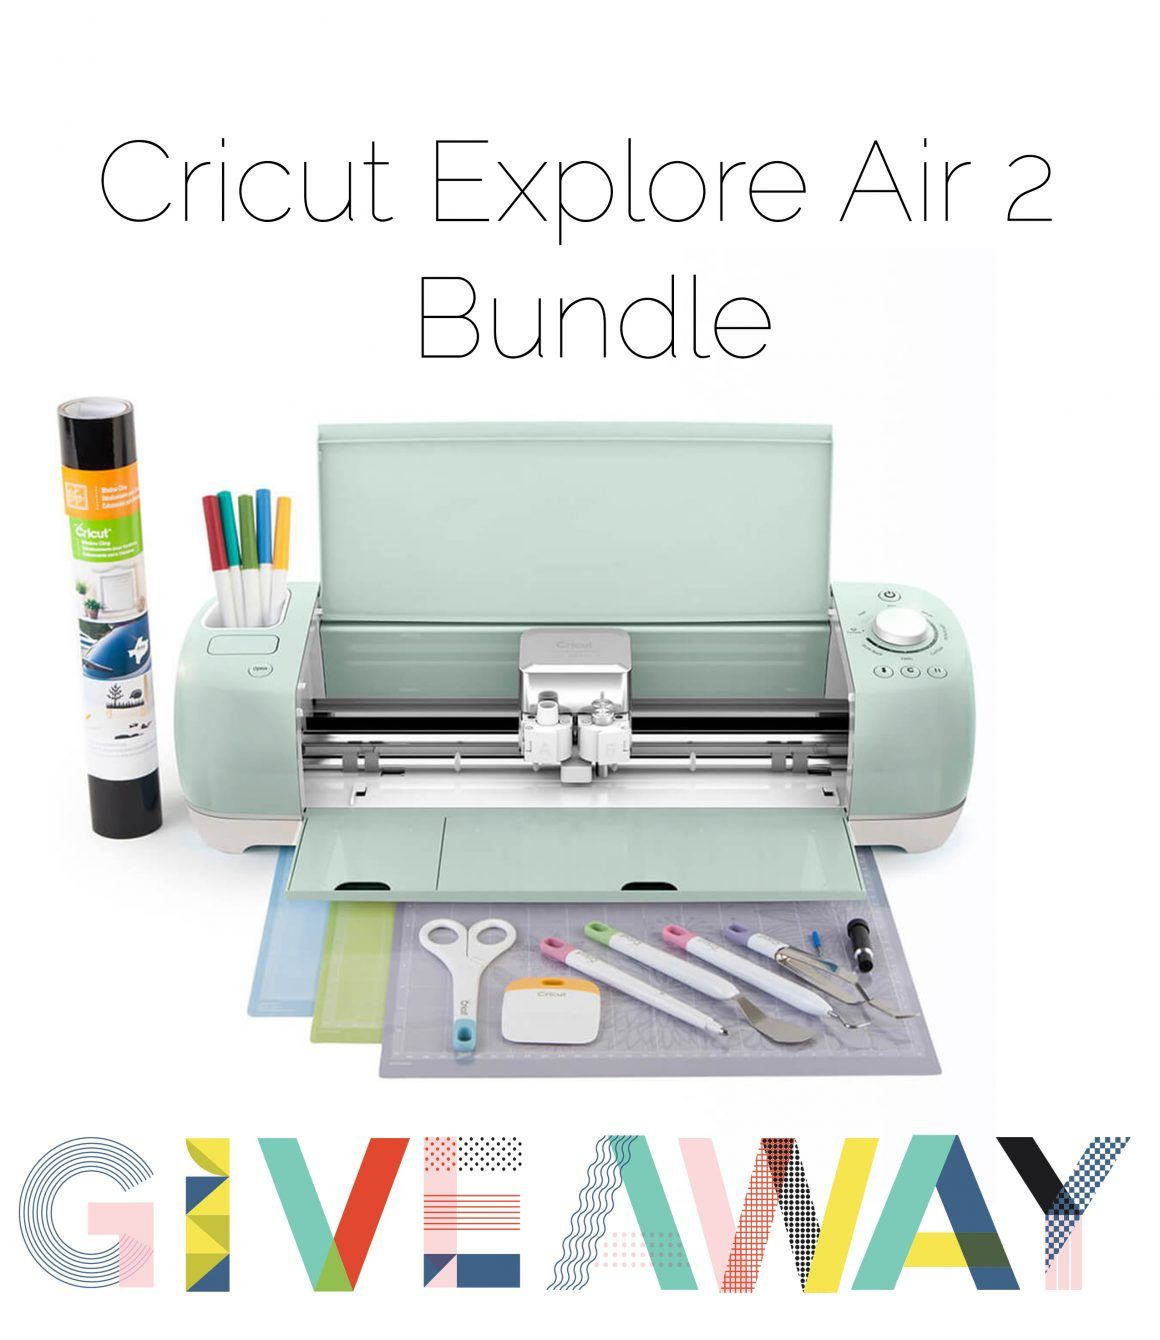 Cricut Explore Air 2 Bundle Giveaway Open To Canada And The Us Last Day To Enter August 1 2017 Cricut Explore Air Cricut Explore Cricut